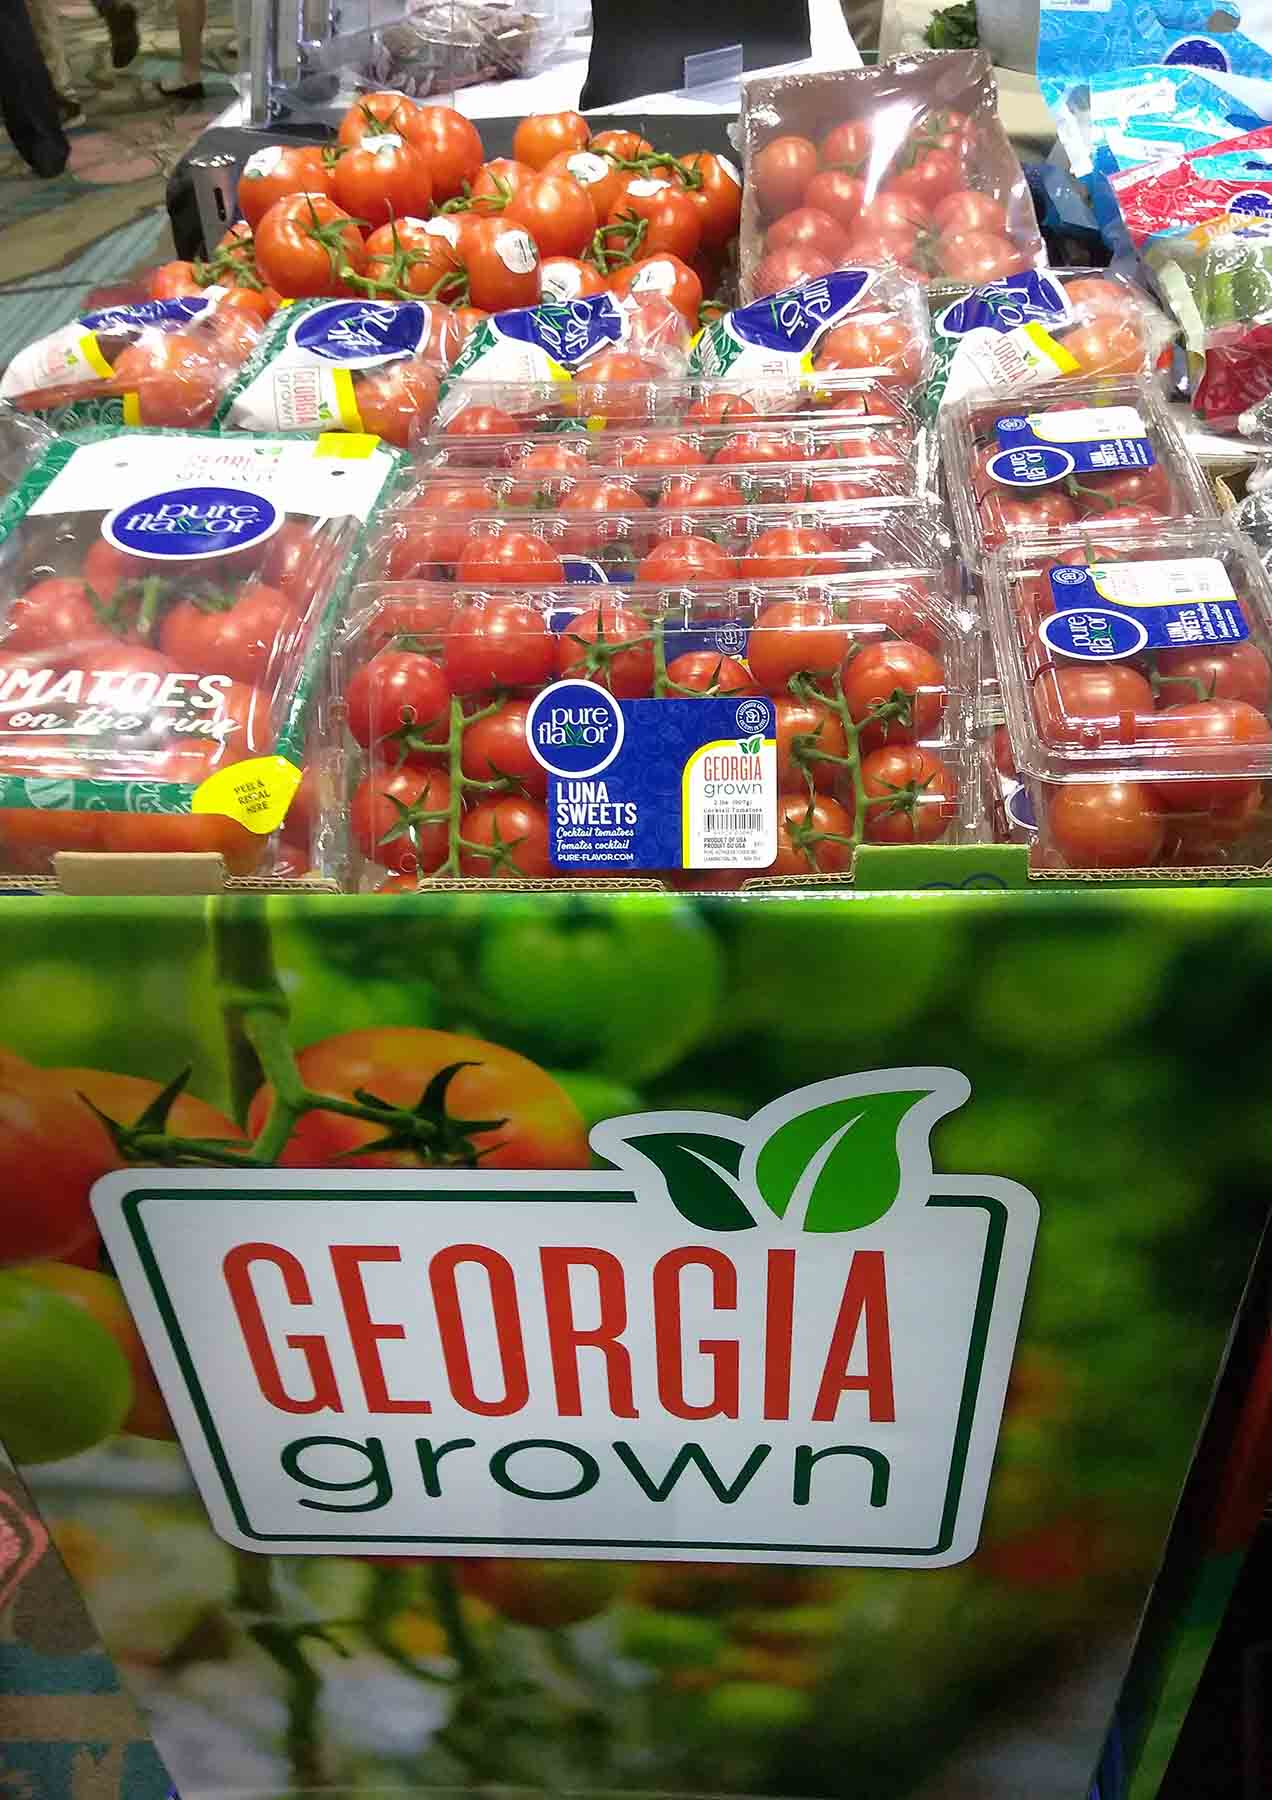 Georgia Grown Produce - Produce Business